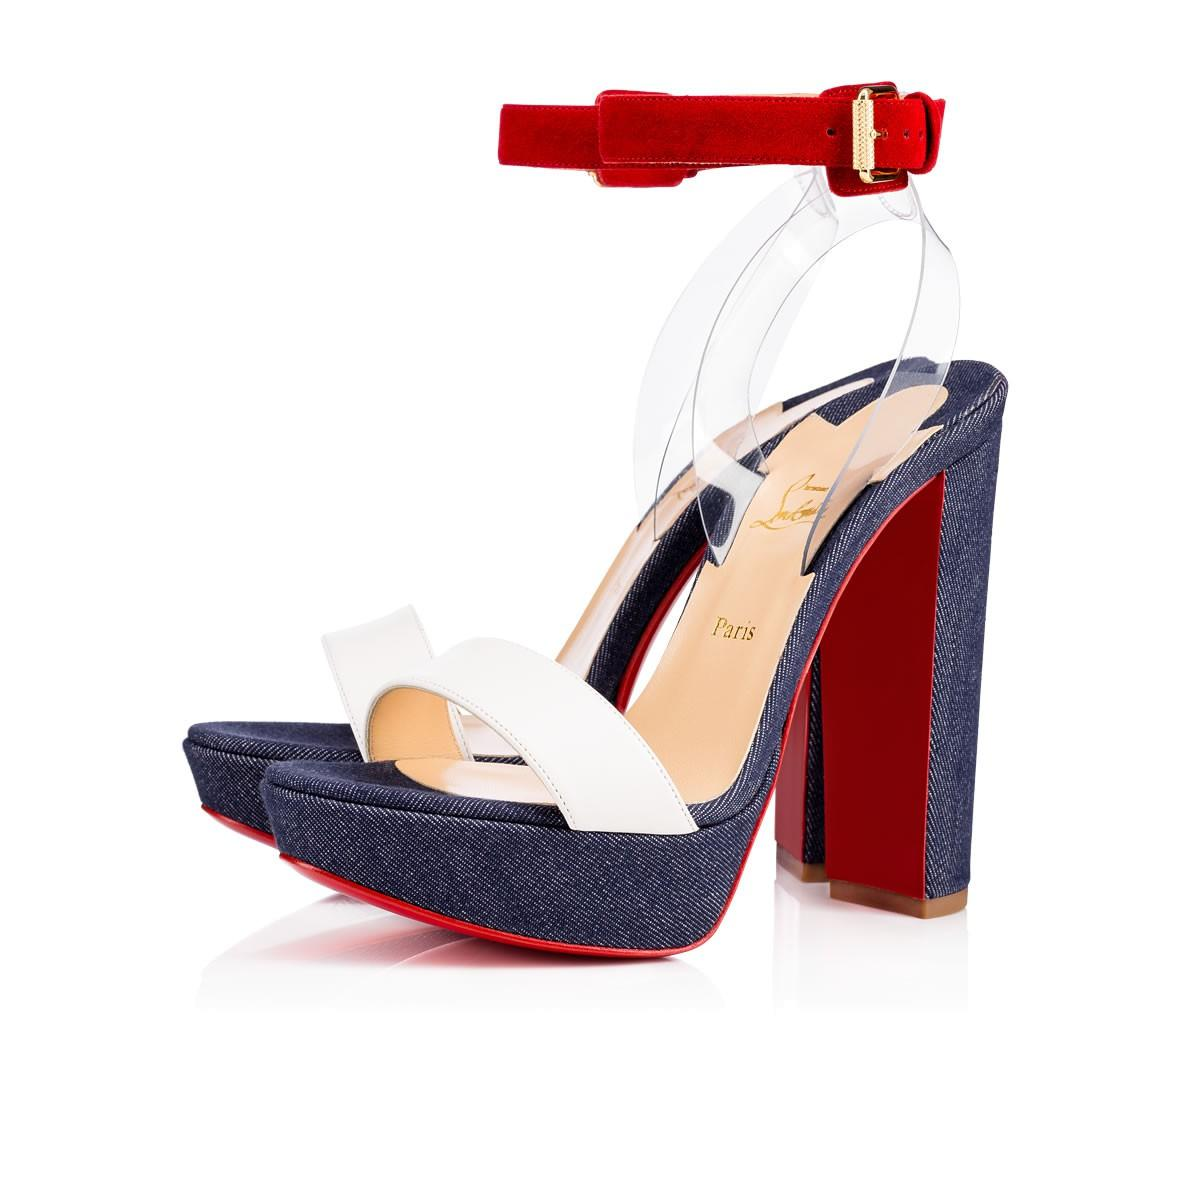 Christian Louboutin Cherry 140 Sandals factory outlet ucGILa